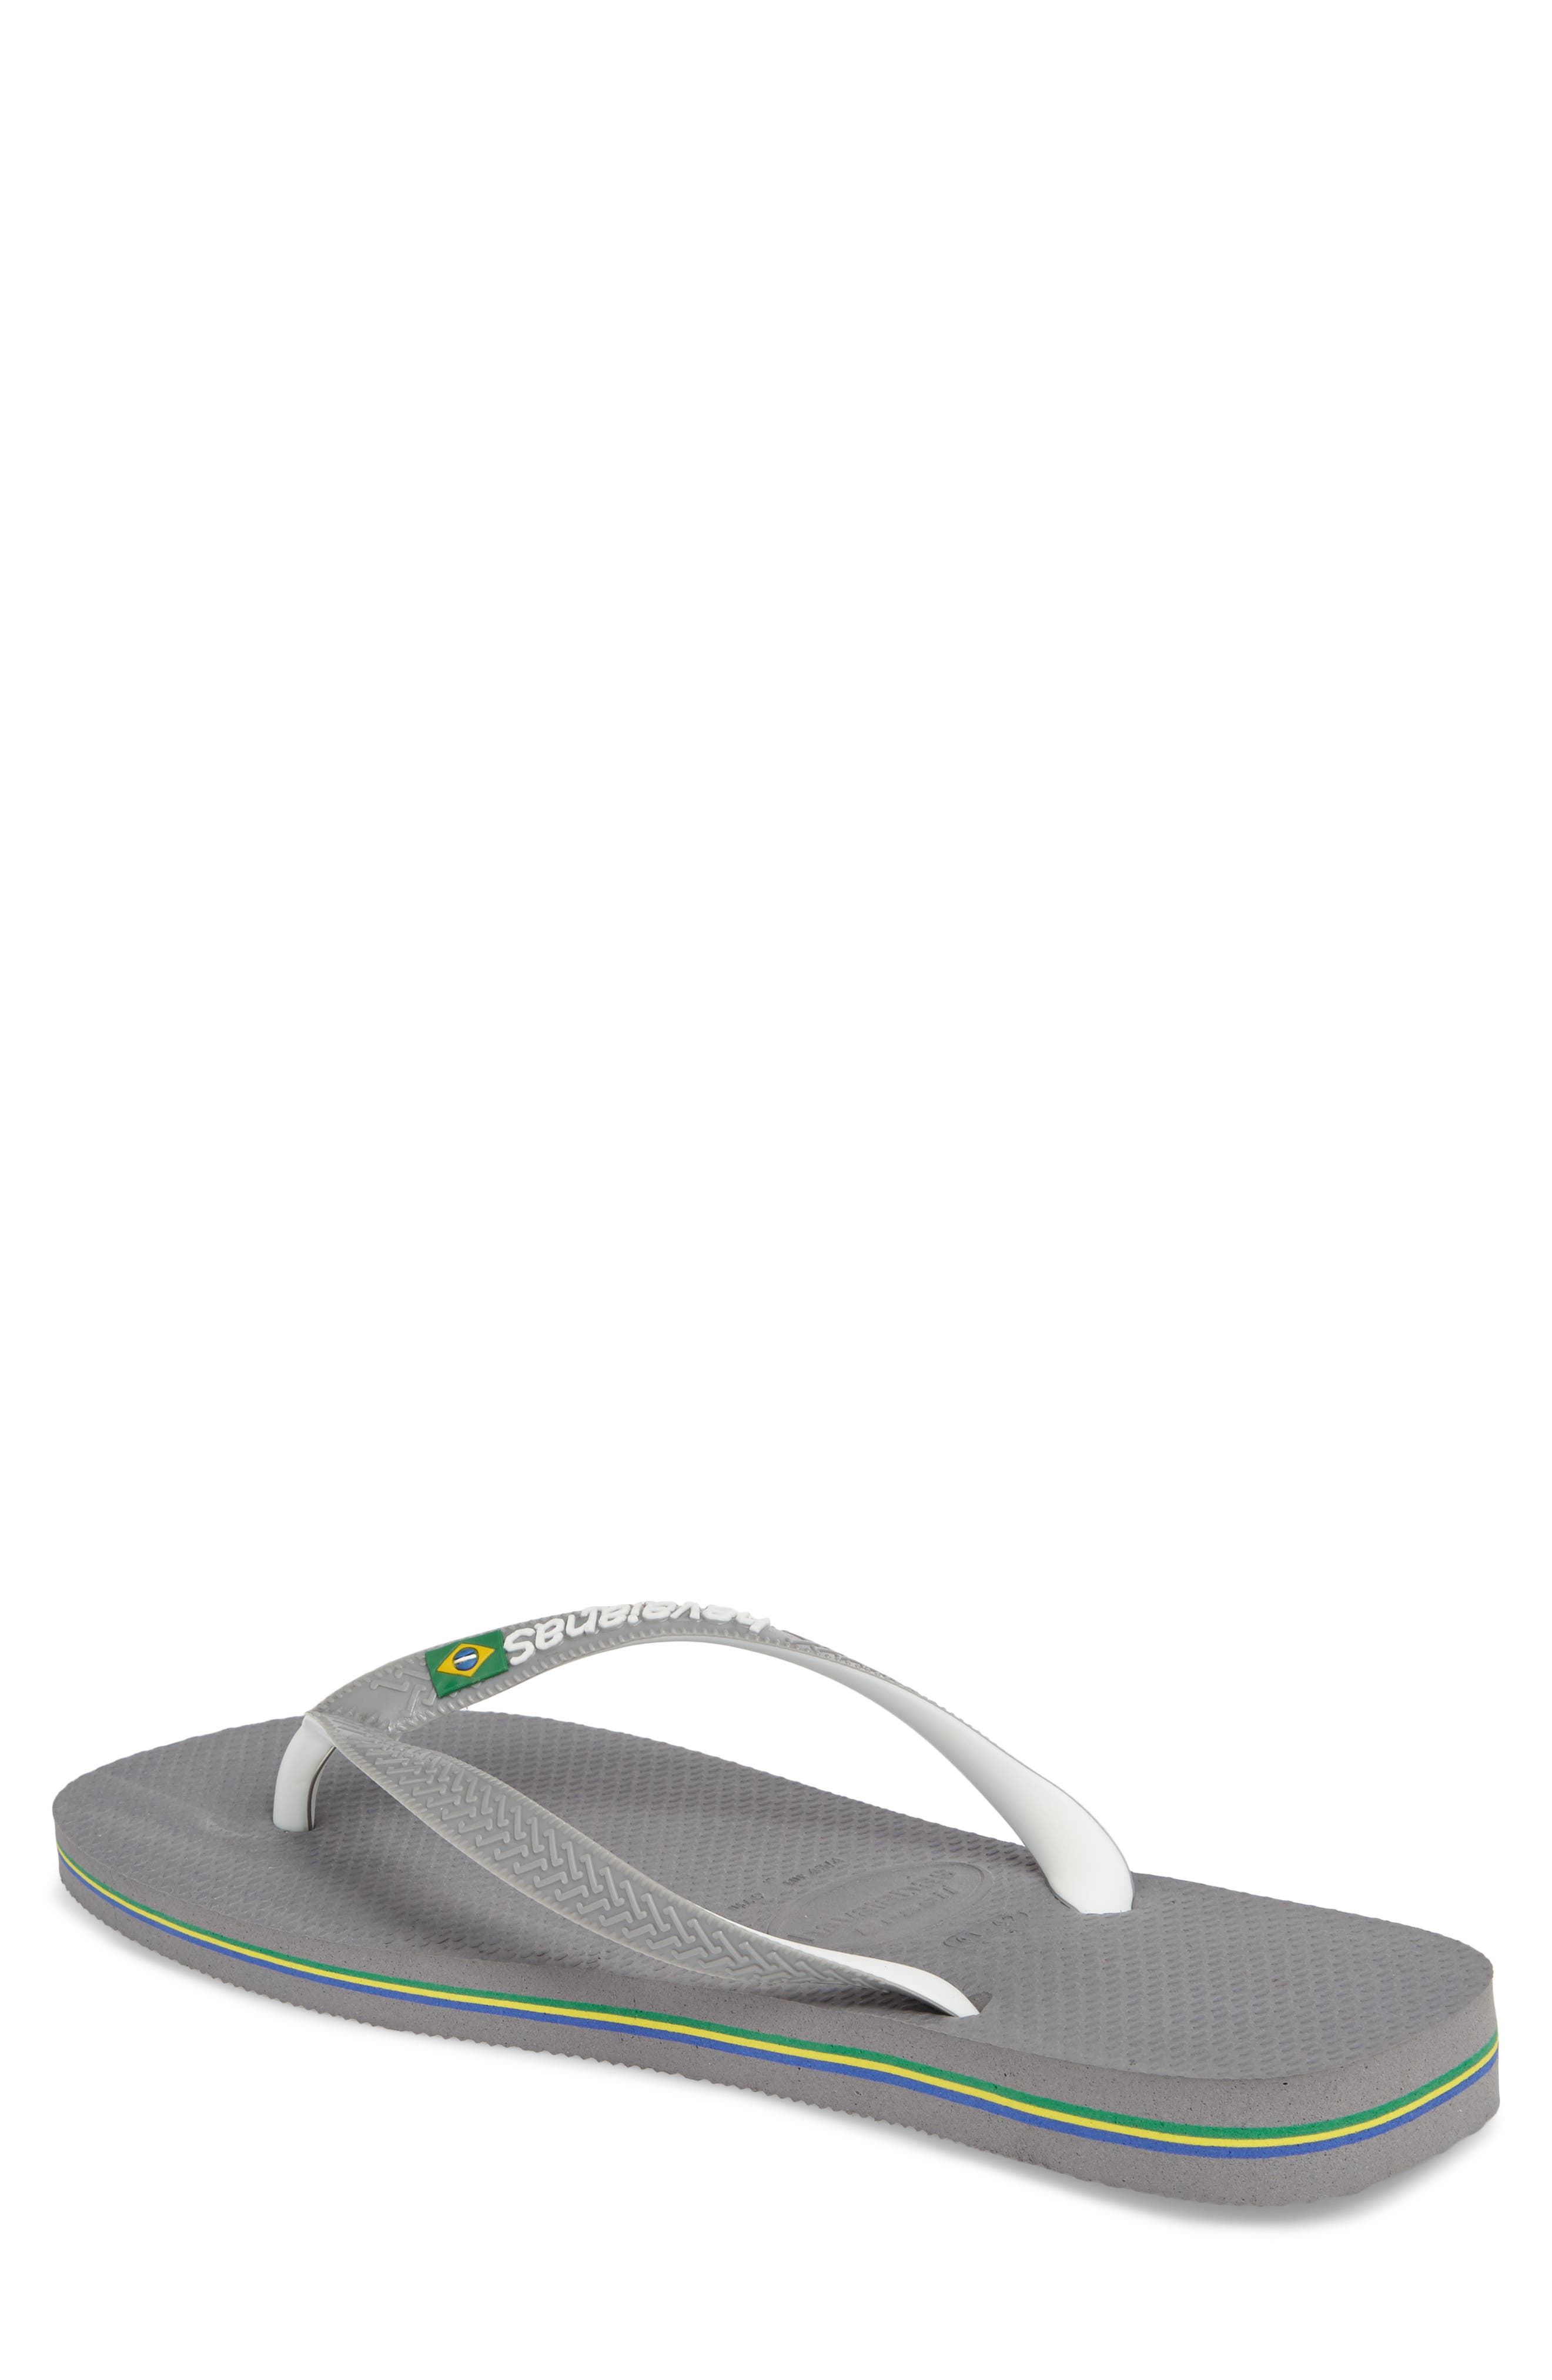 Brazil Mix Flip Flop,                             Alternate thumbnail 3, color,                             GREY